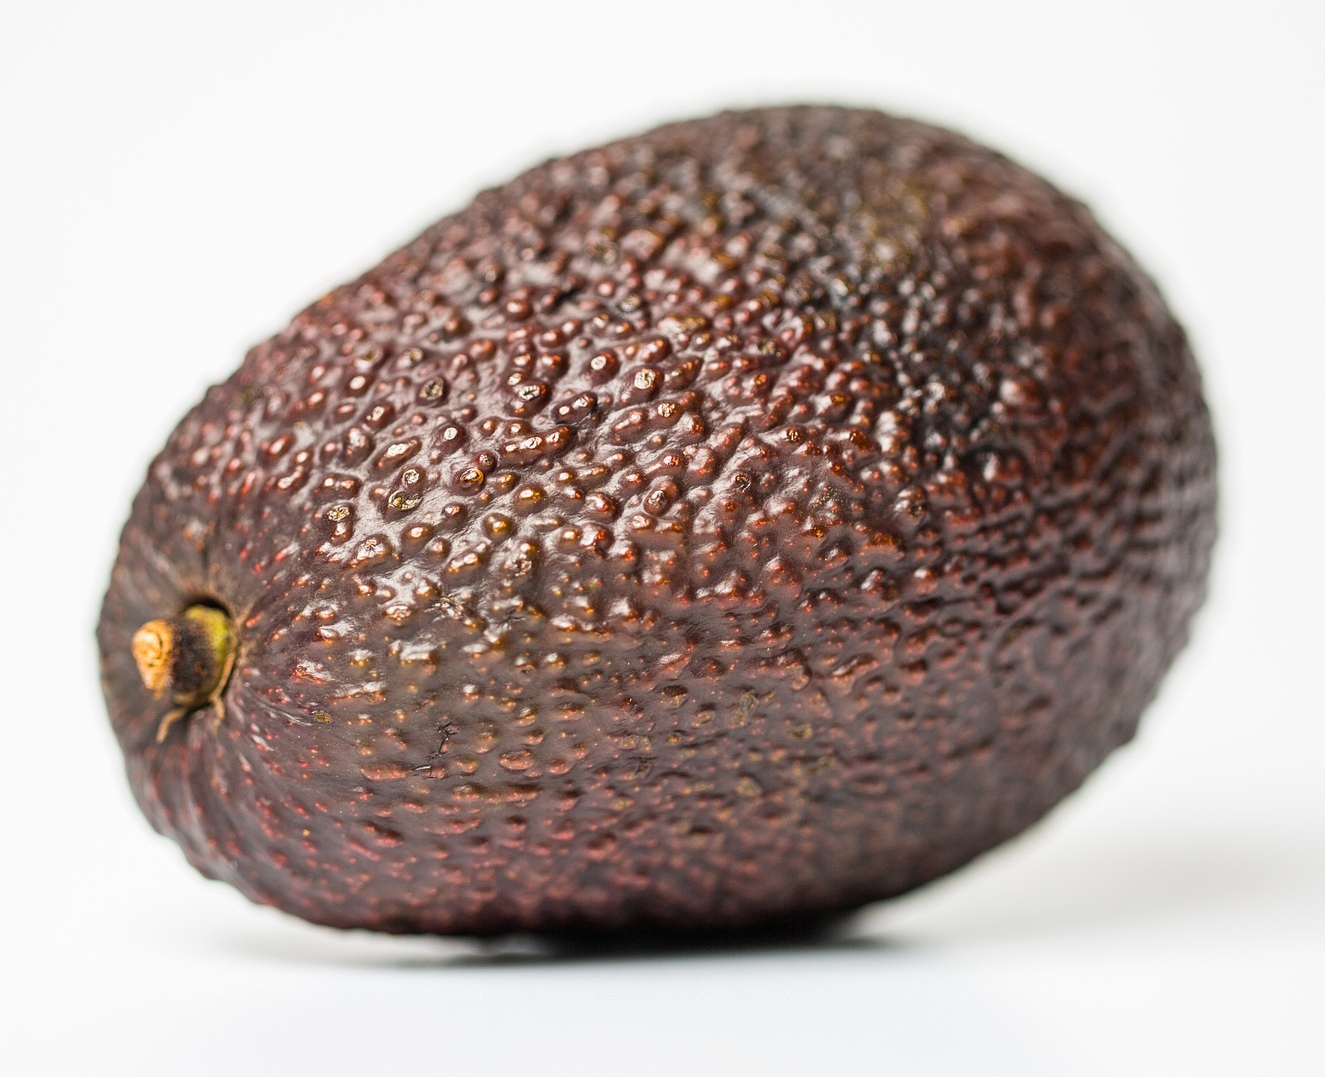 Water quality impacts on California avocado – a